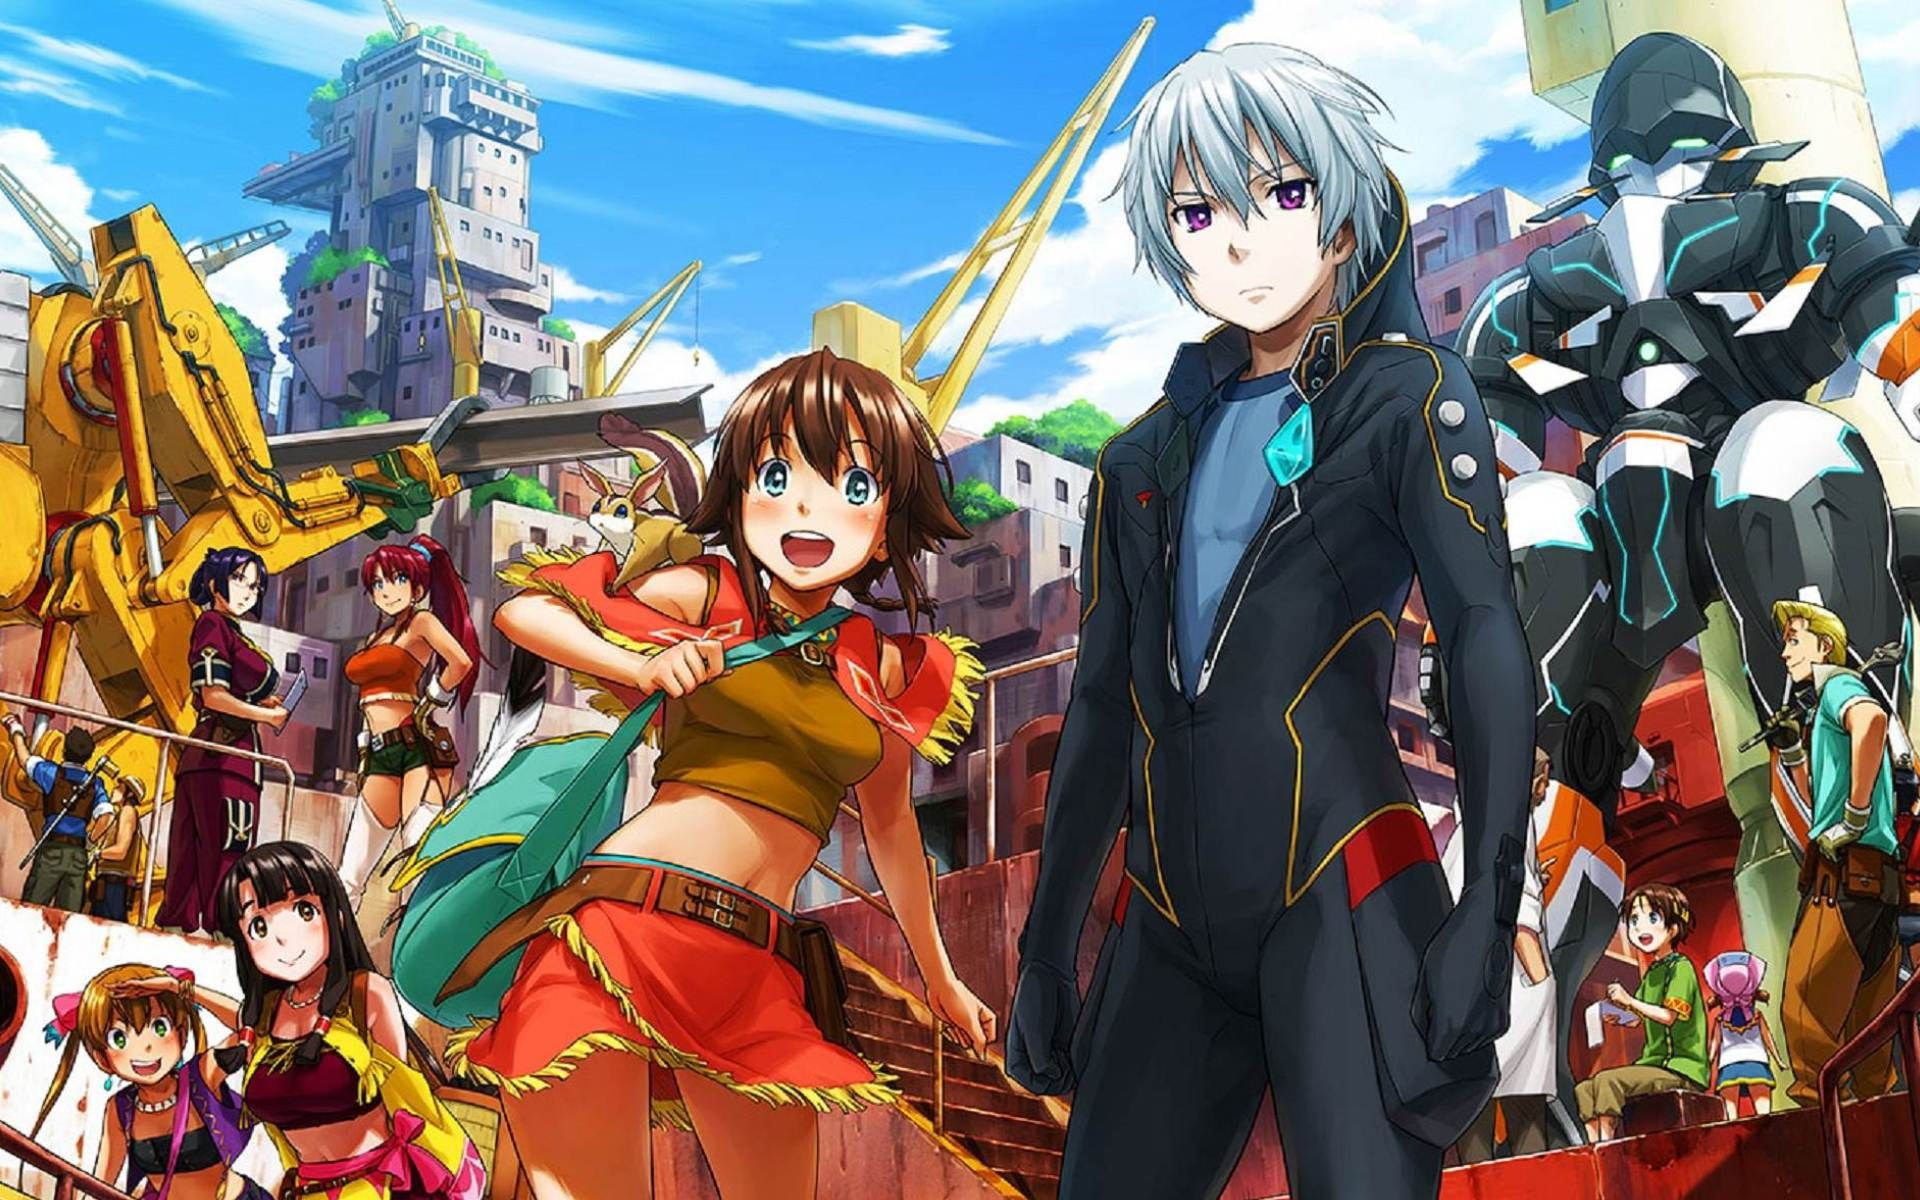 Suisei no Gargantia Anime Wallpaper Mecha anime